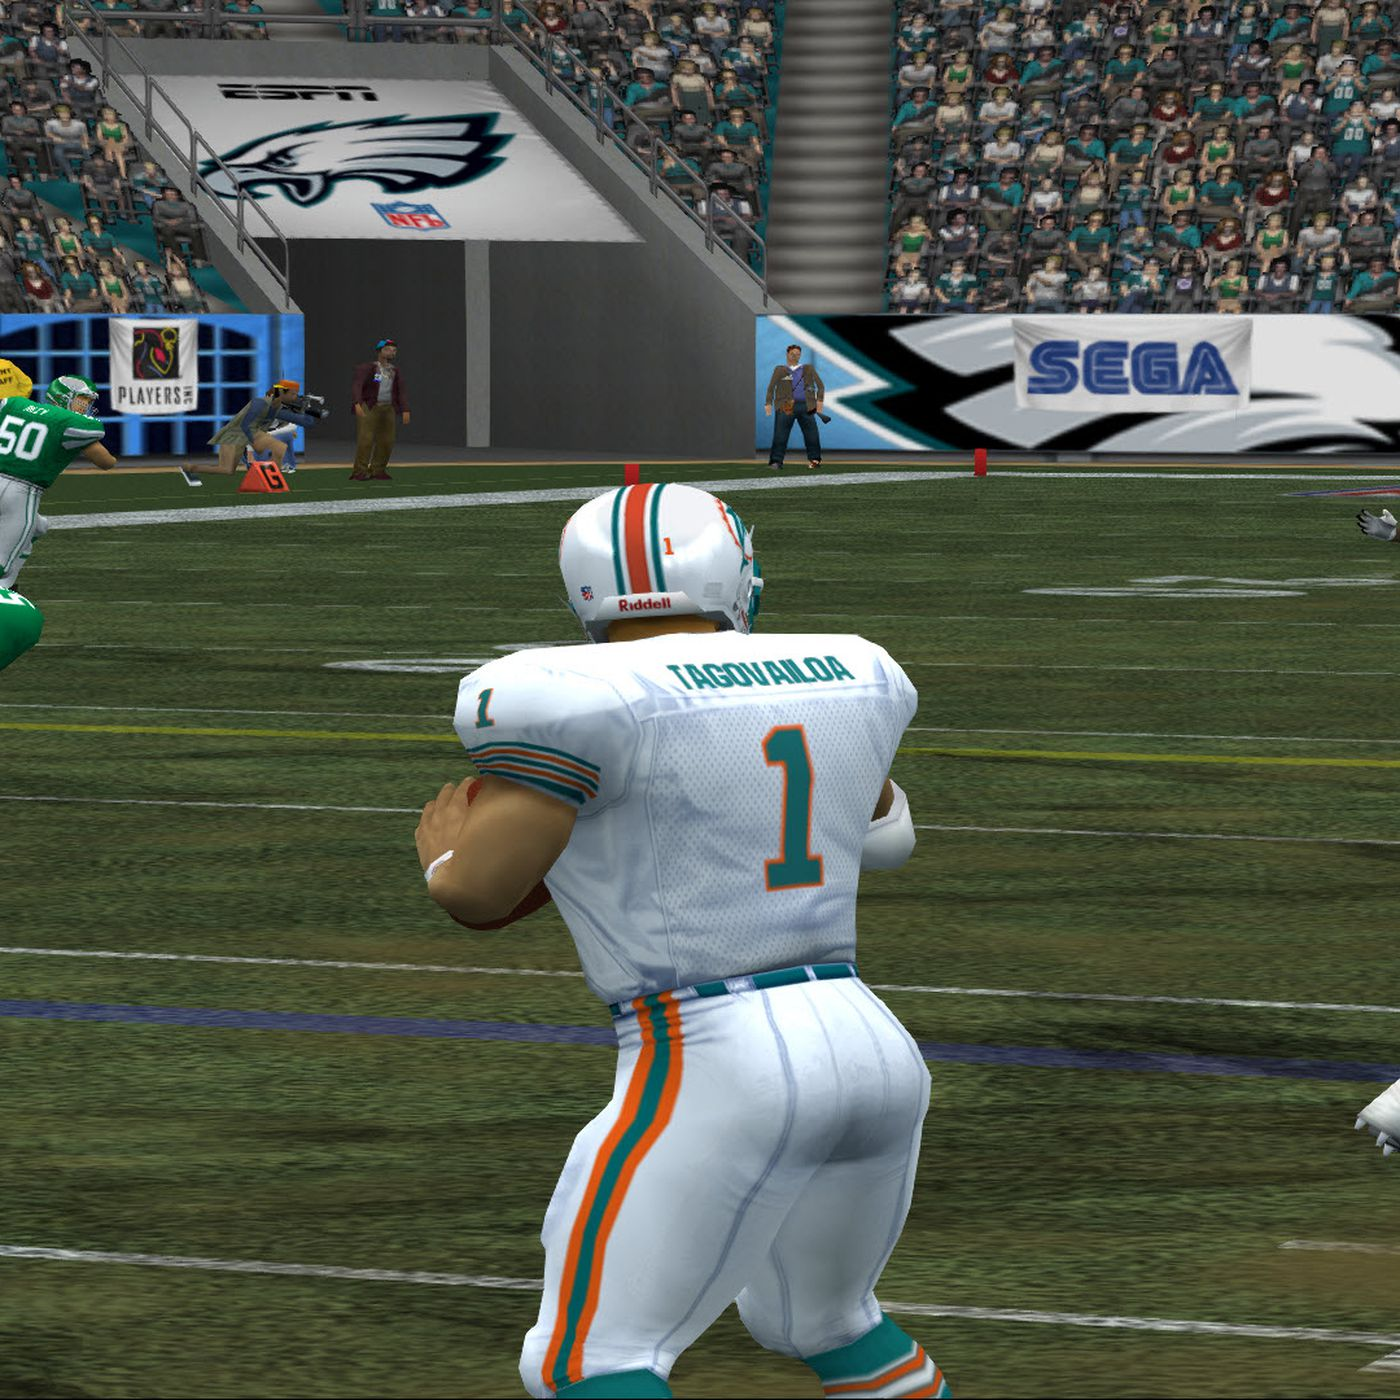 Espn Nfl 2k5 Is Still The Best Nfl Video Game Ever Made The Phinsider